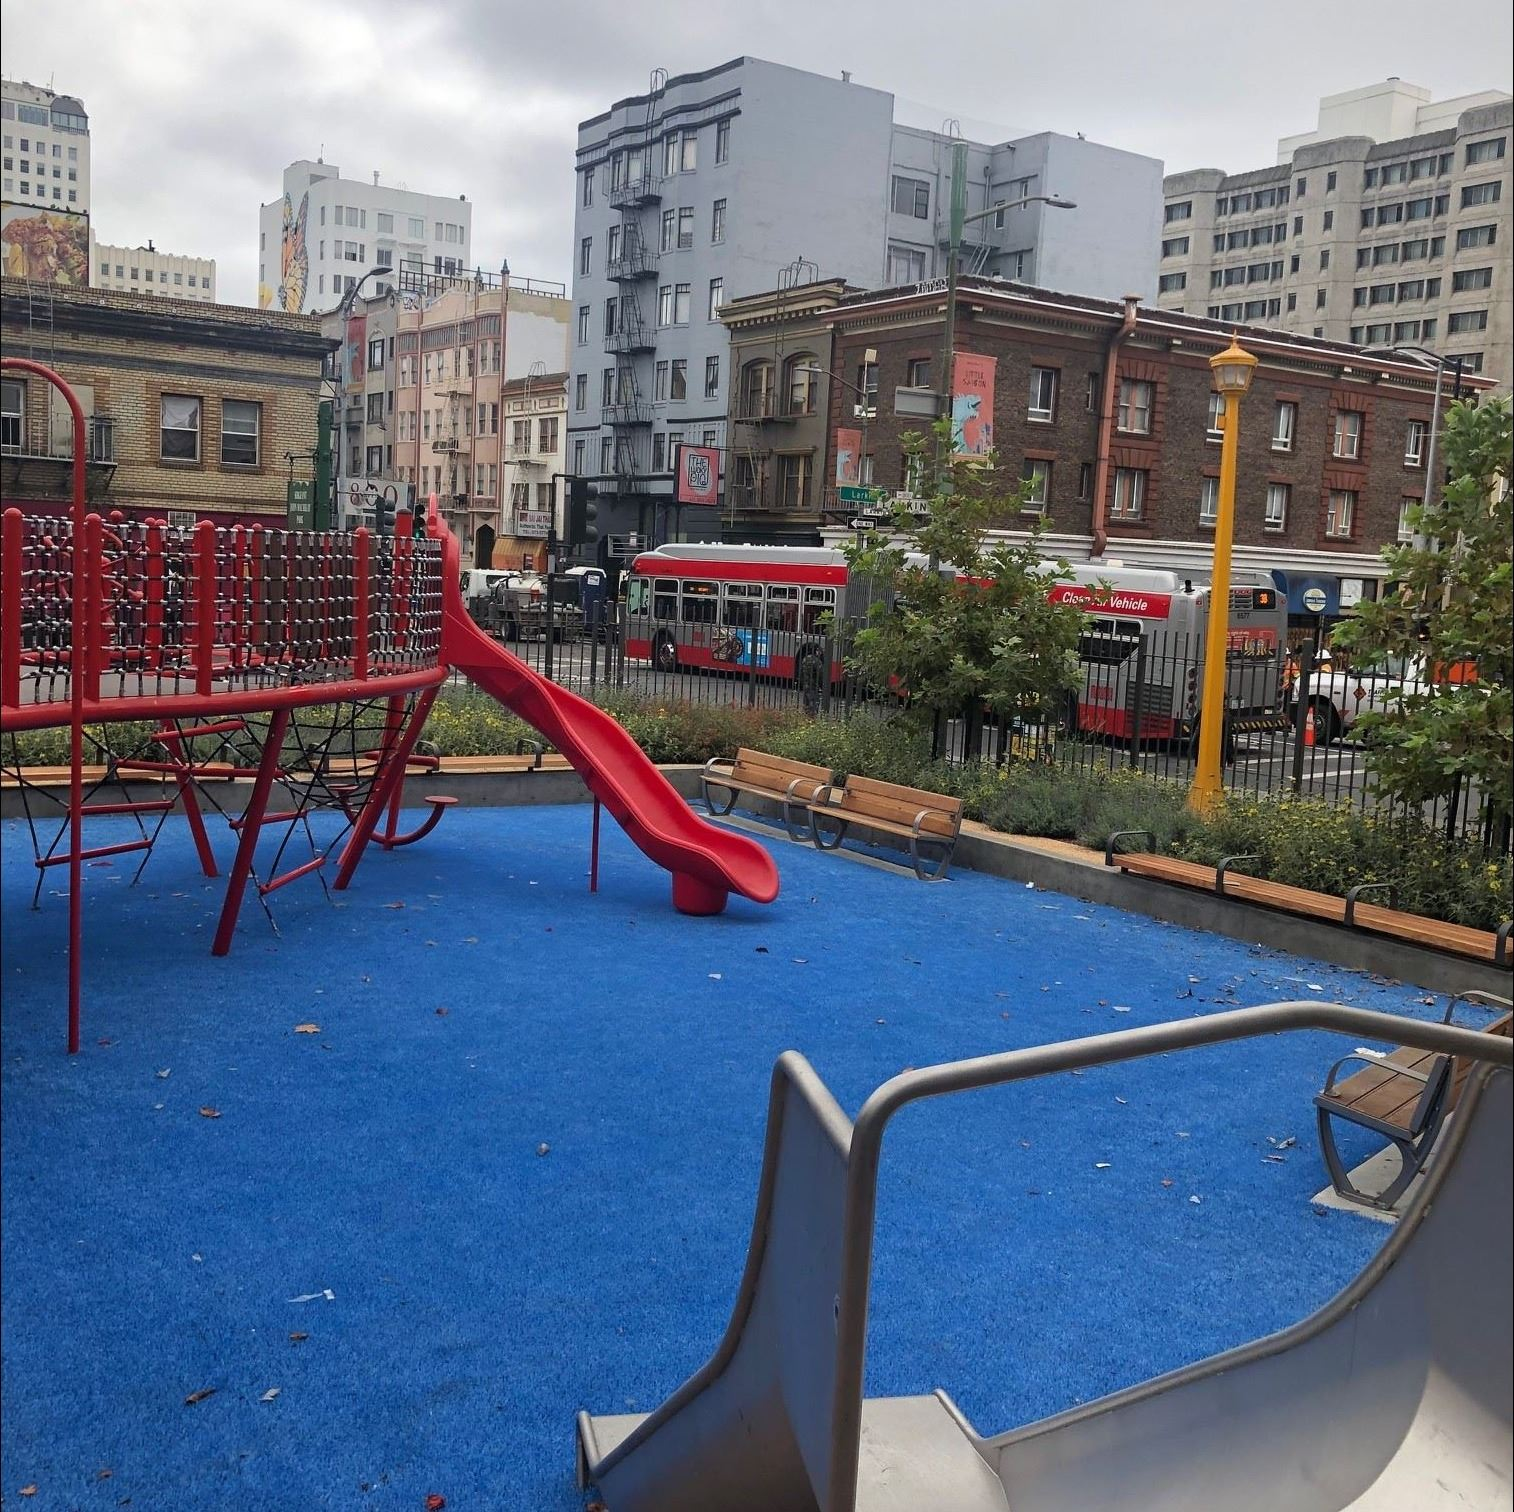 View from top of small slide, red play structure blue safety surface. buildings, bus.